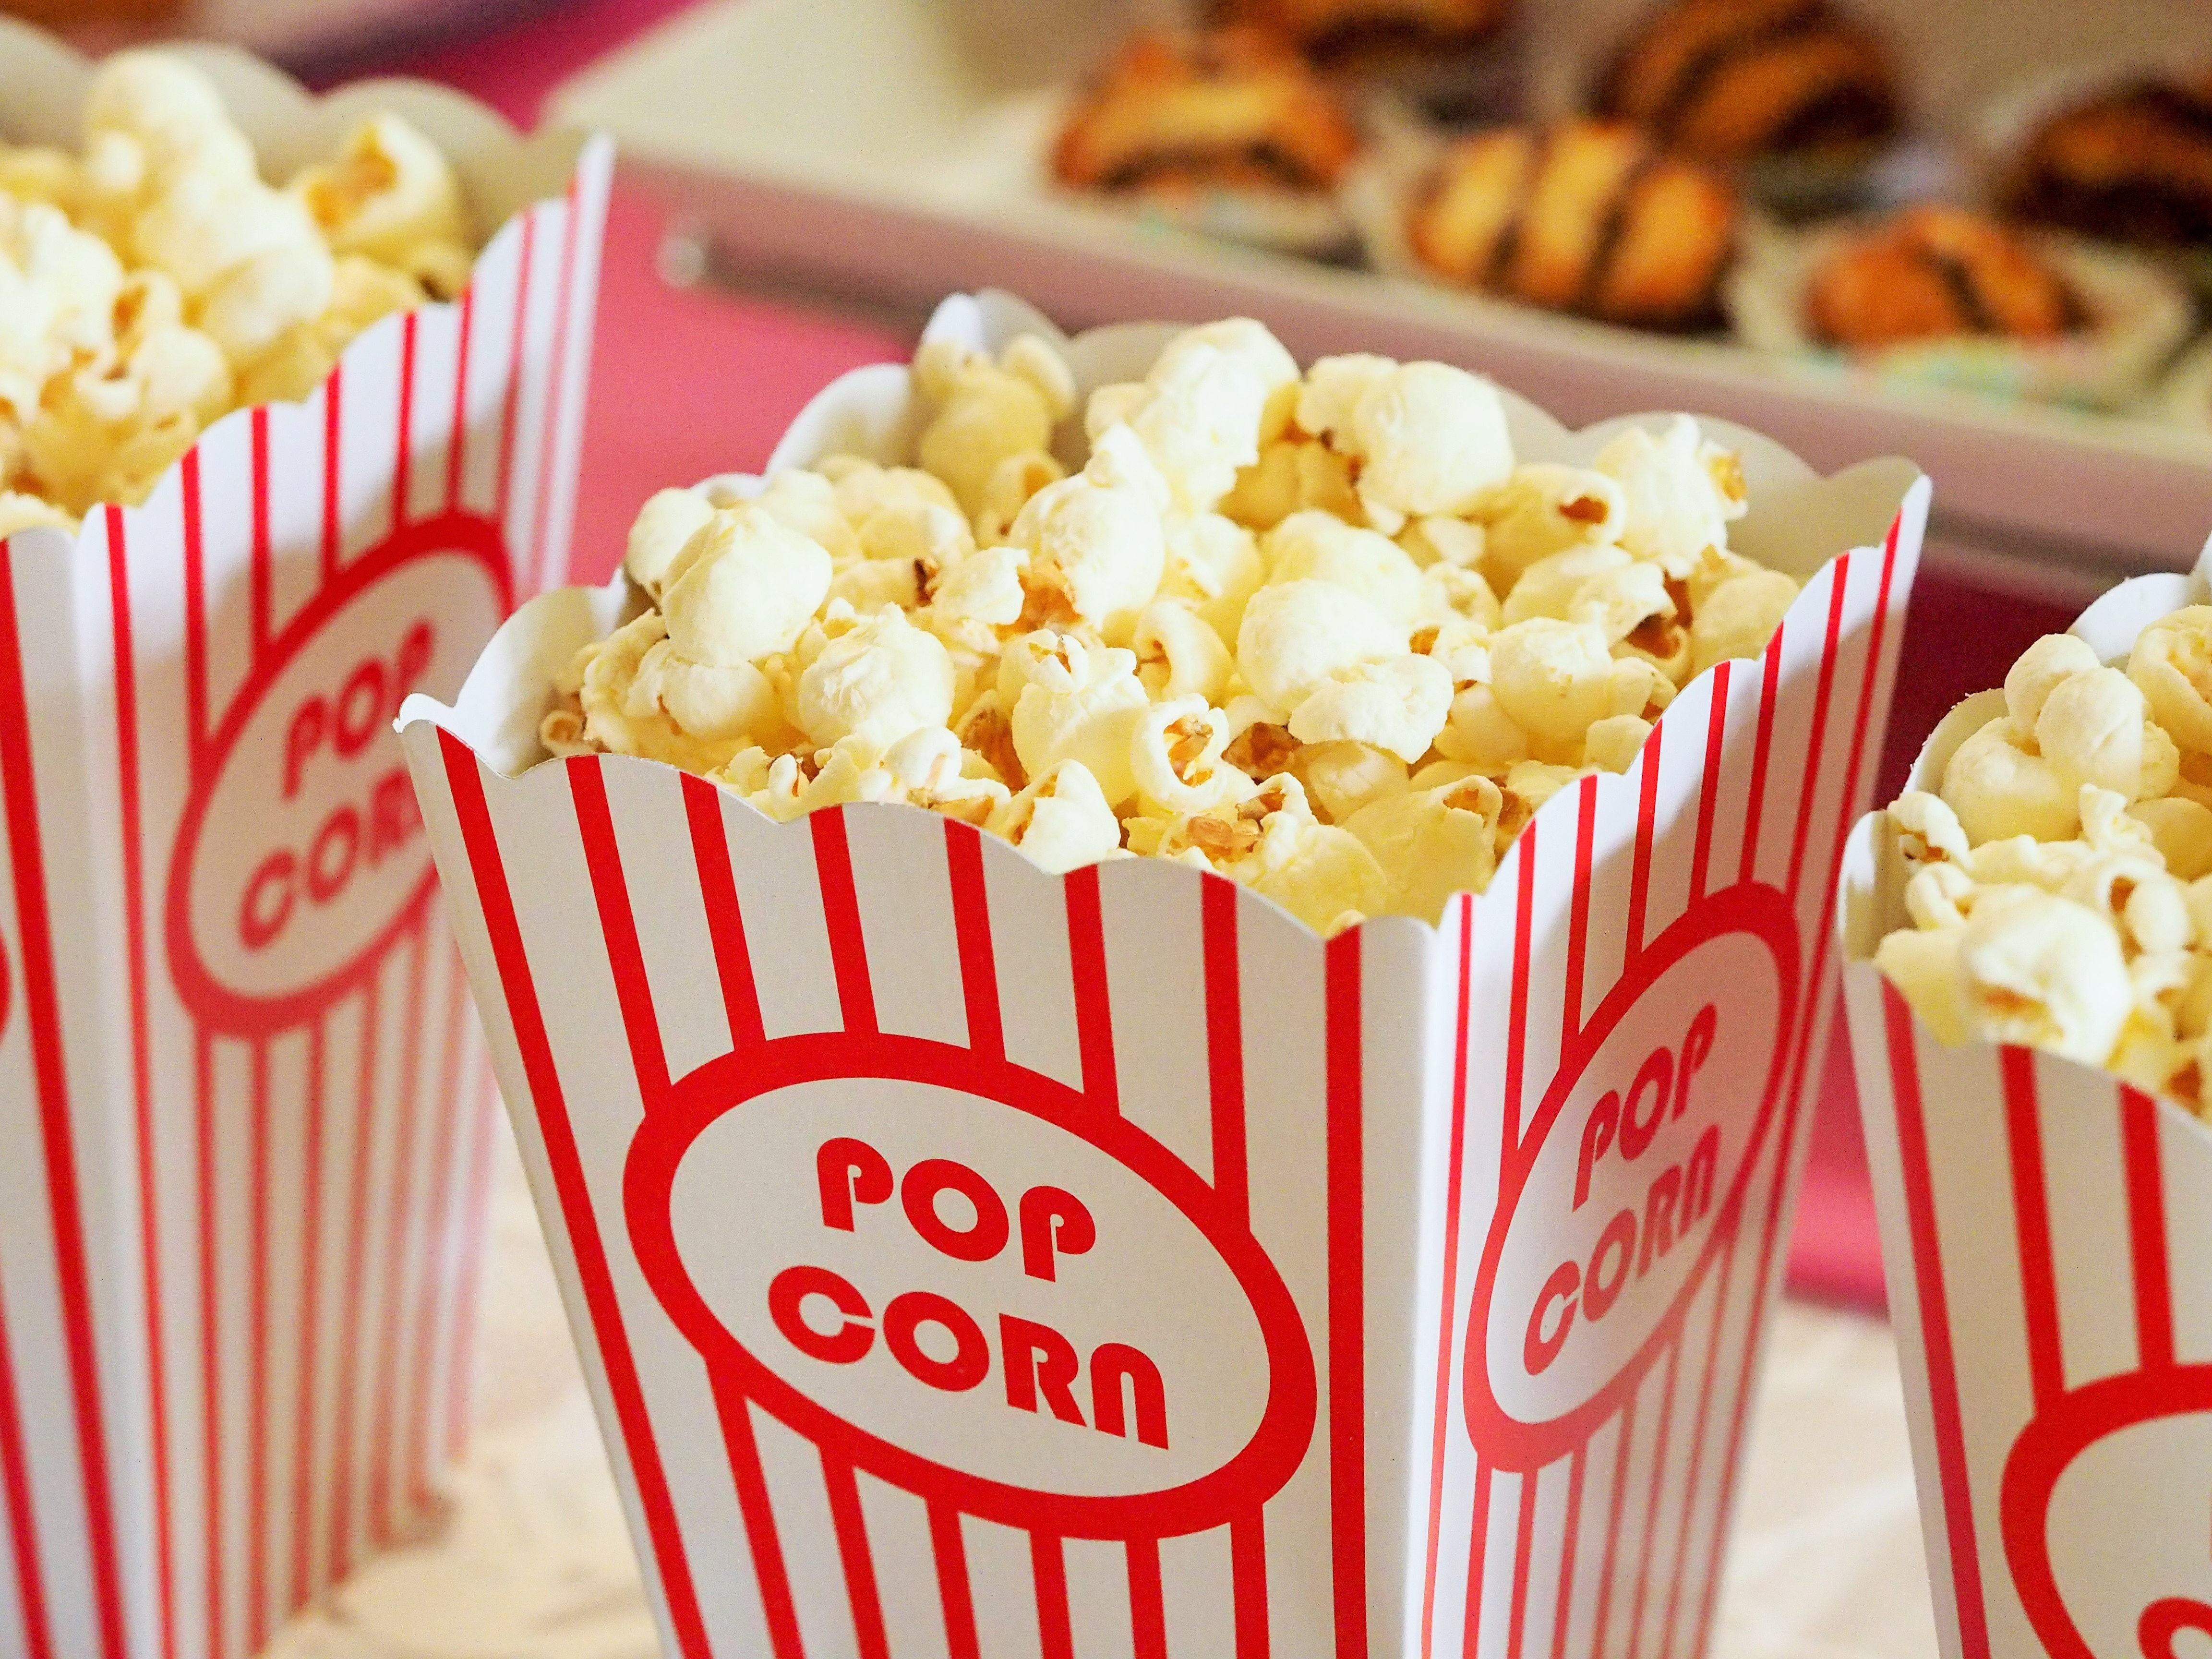 discounted kids summer movie offers – popcorn close up